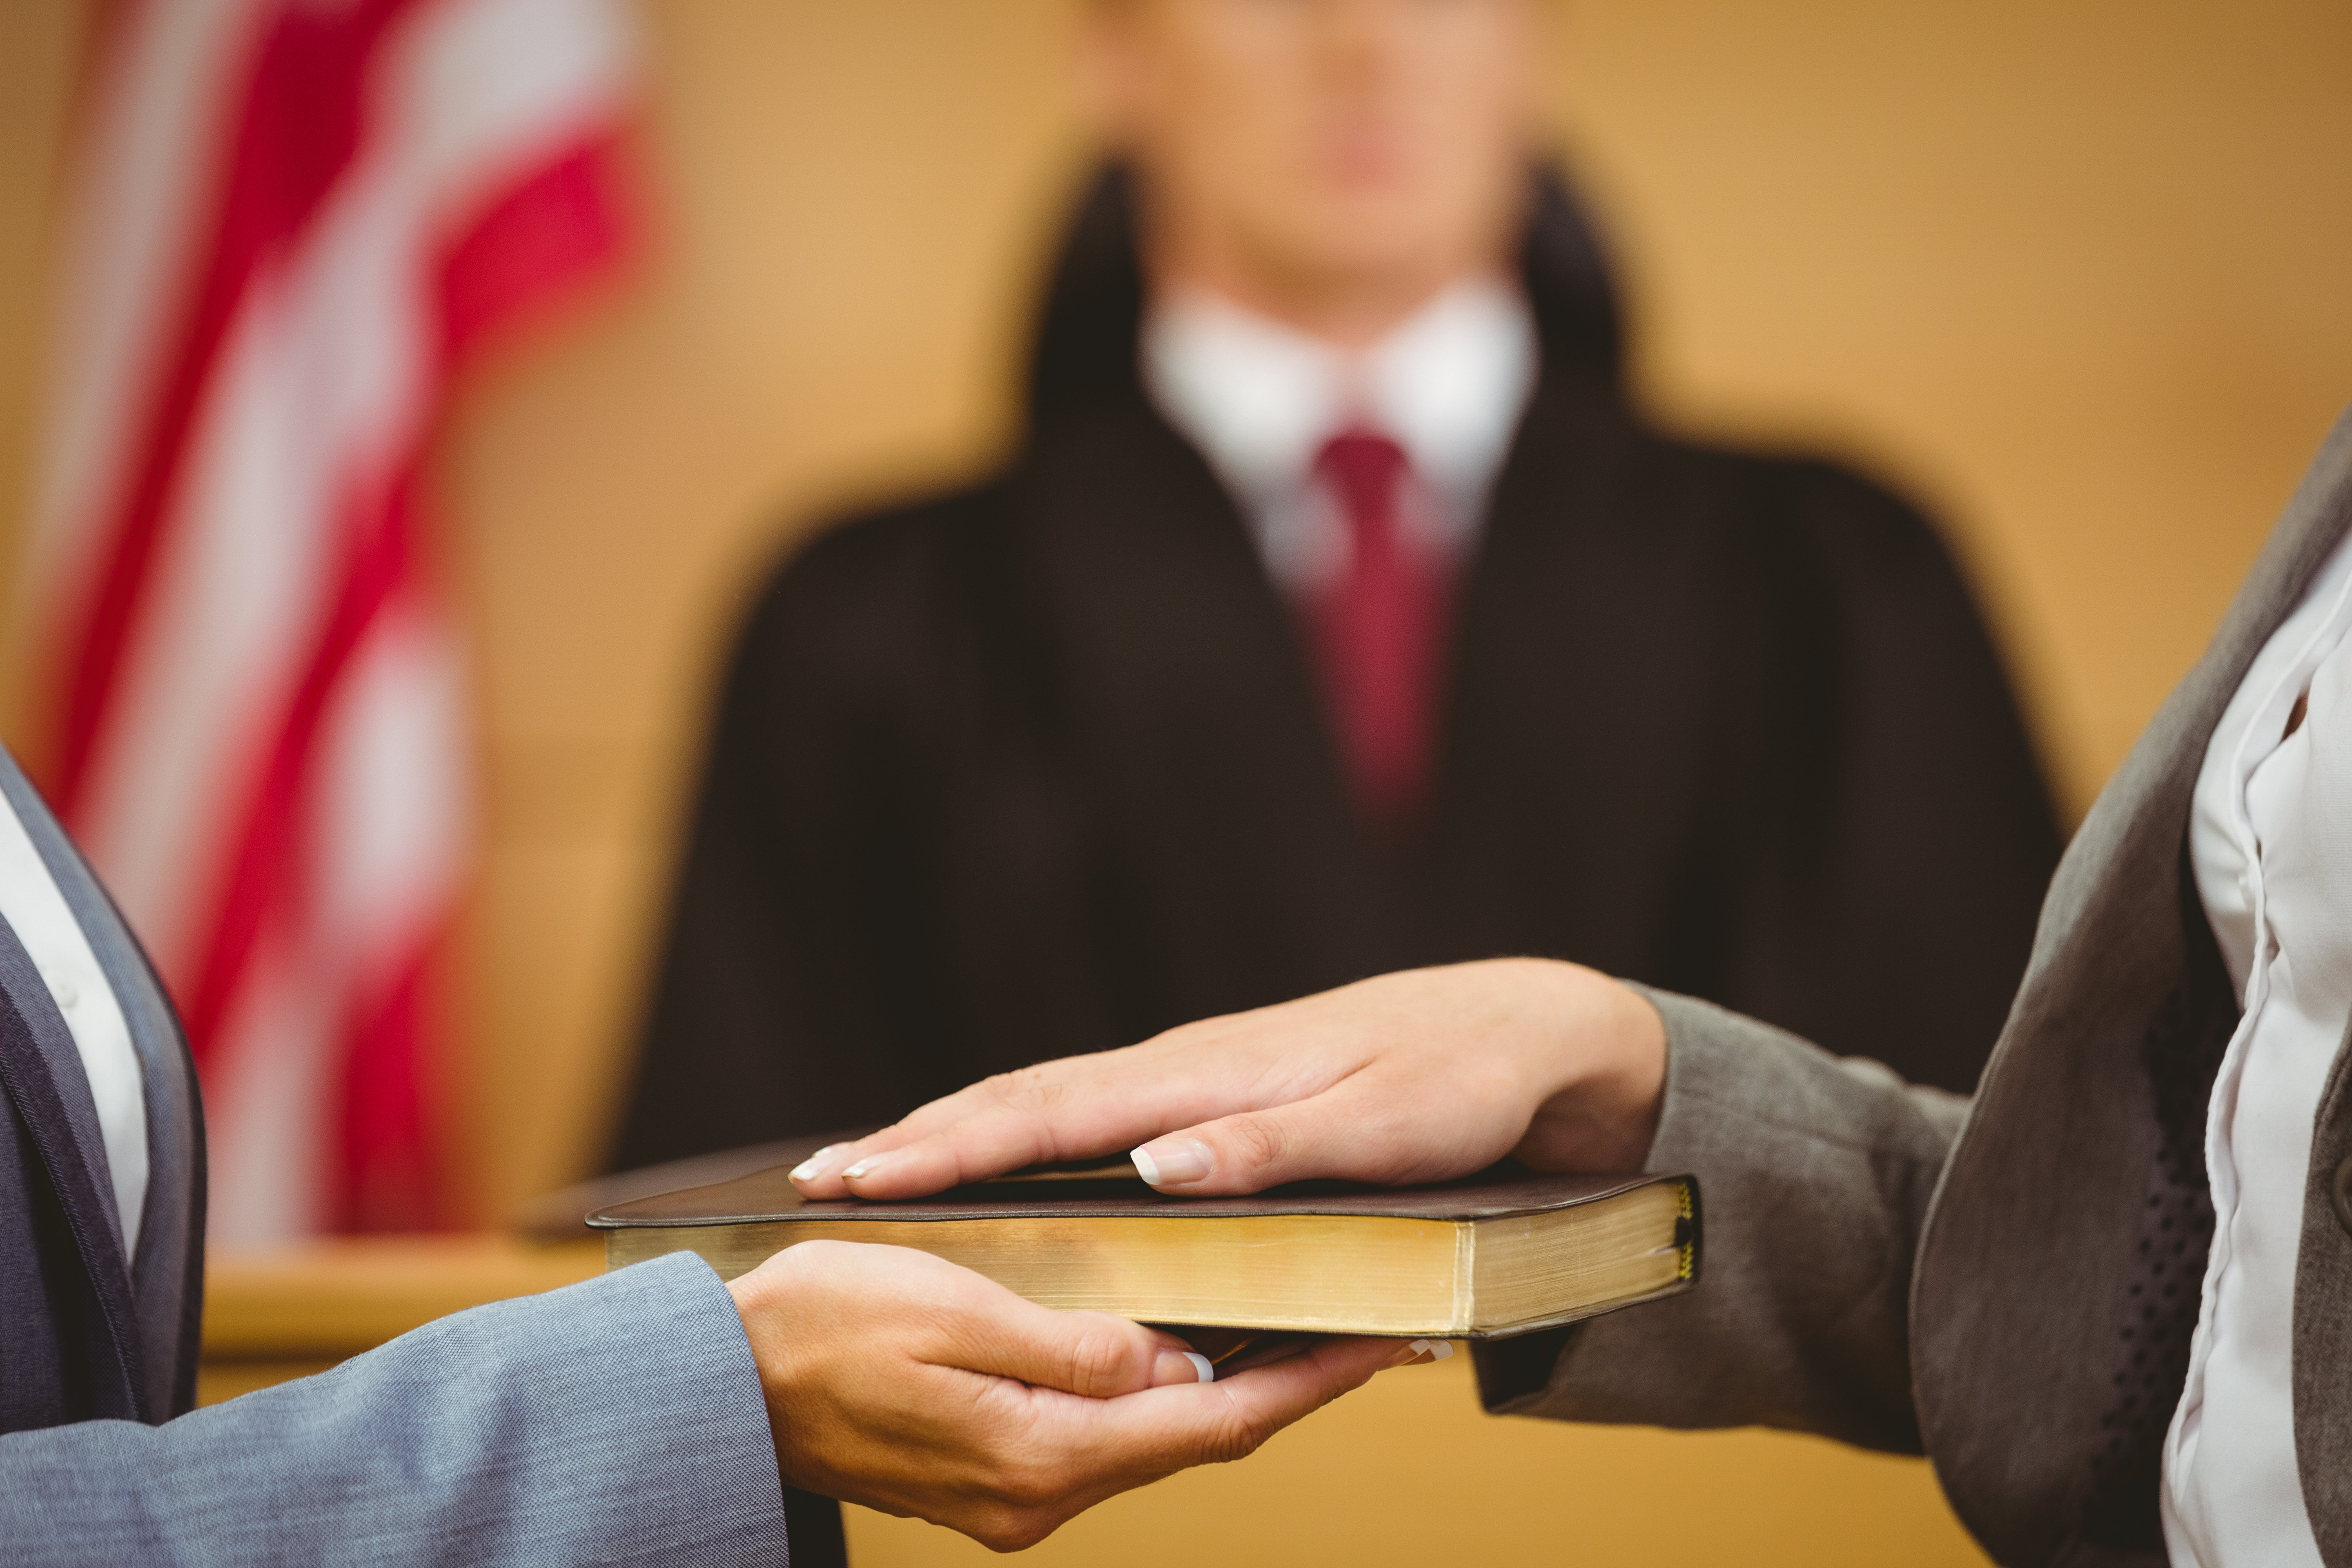 Witness swearing on bible in court. Image Shutterstock